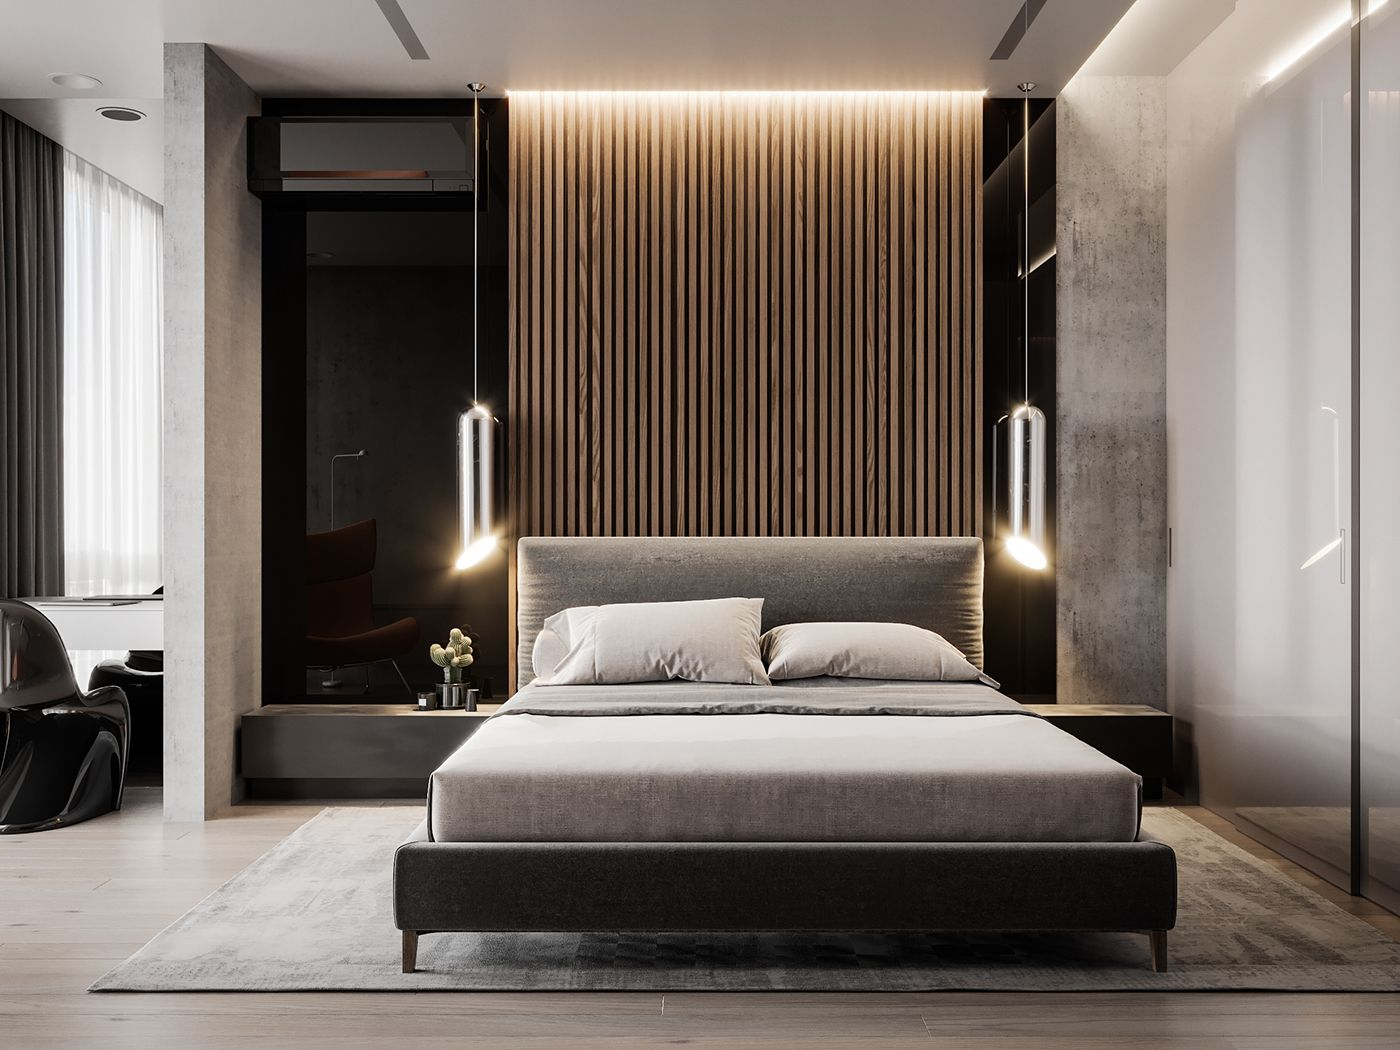 bedroom design | Quarto moderno, Quarto contemporâneo ...